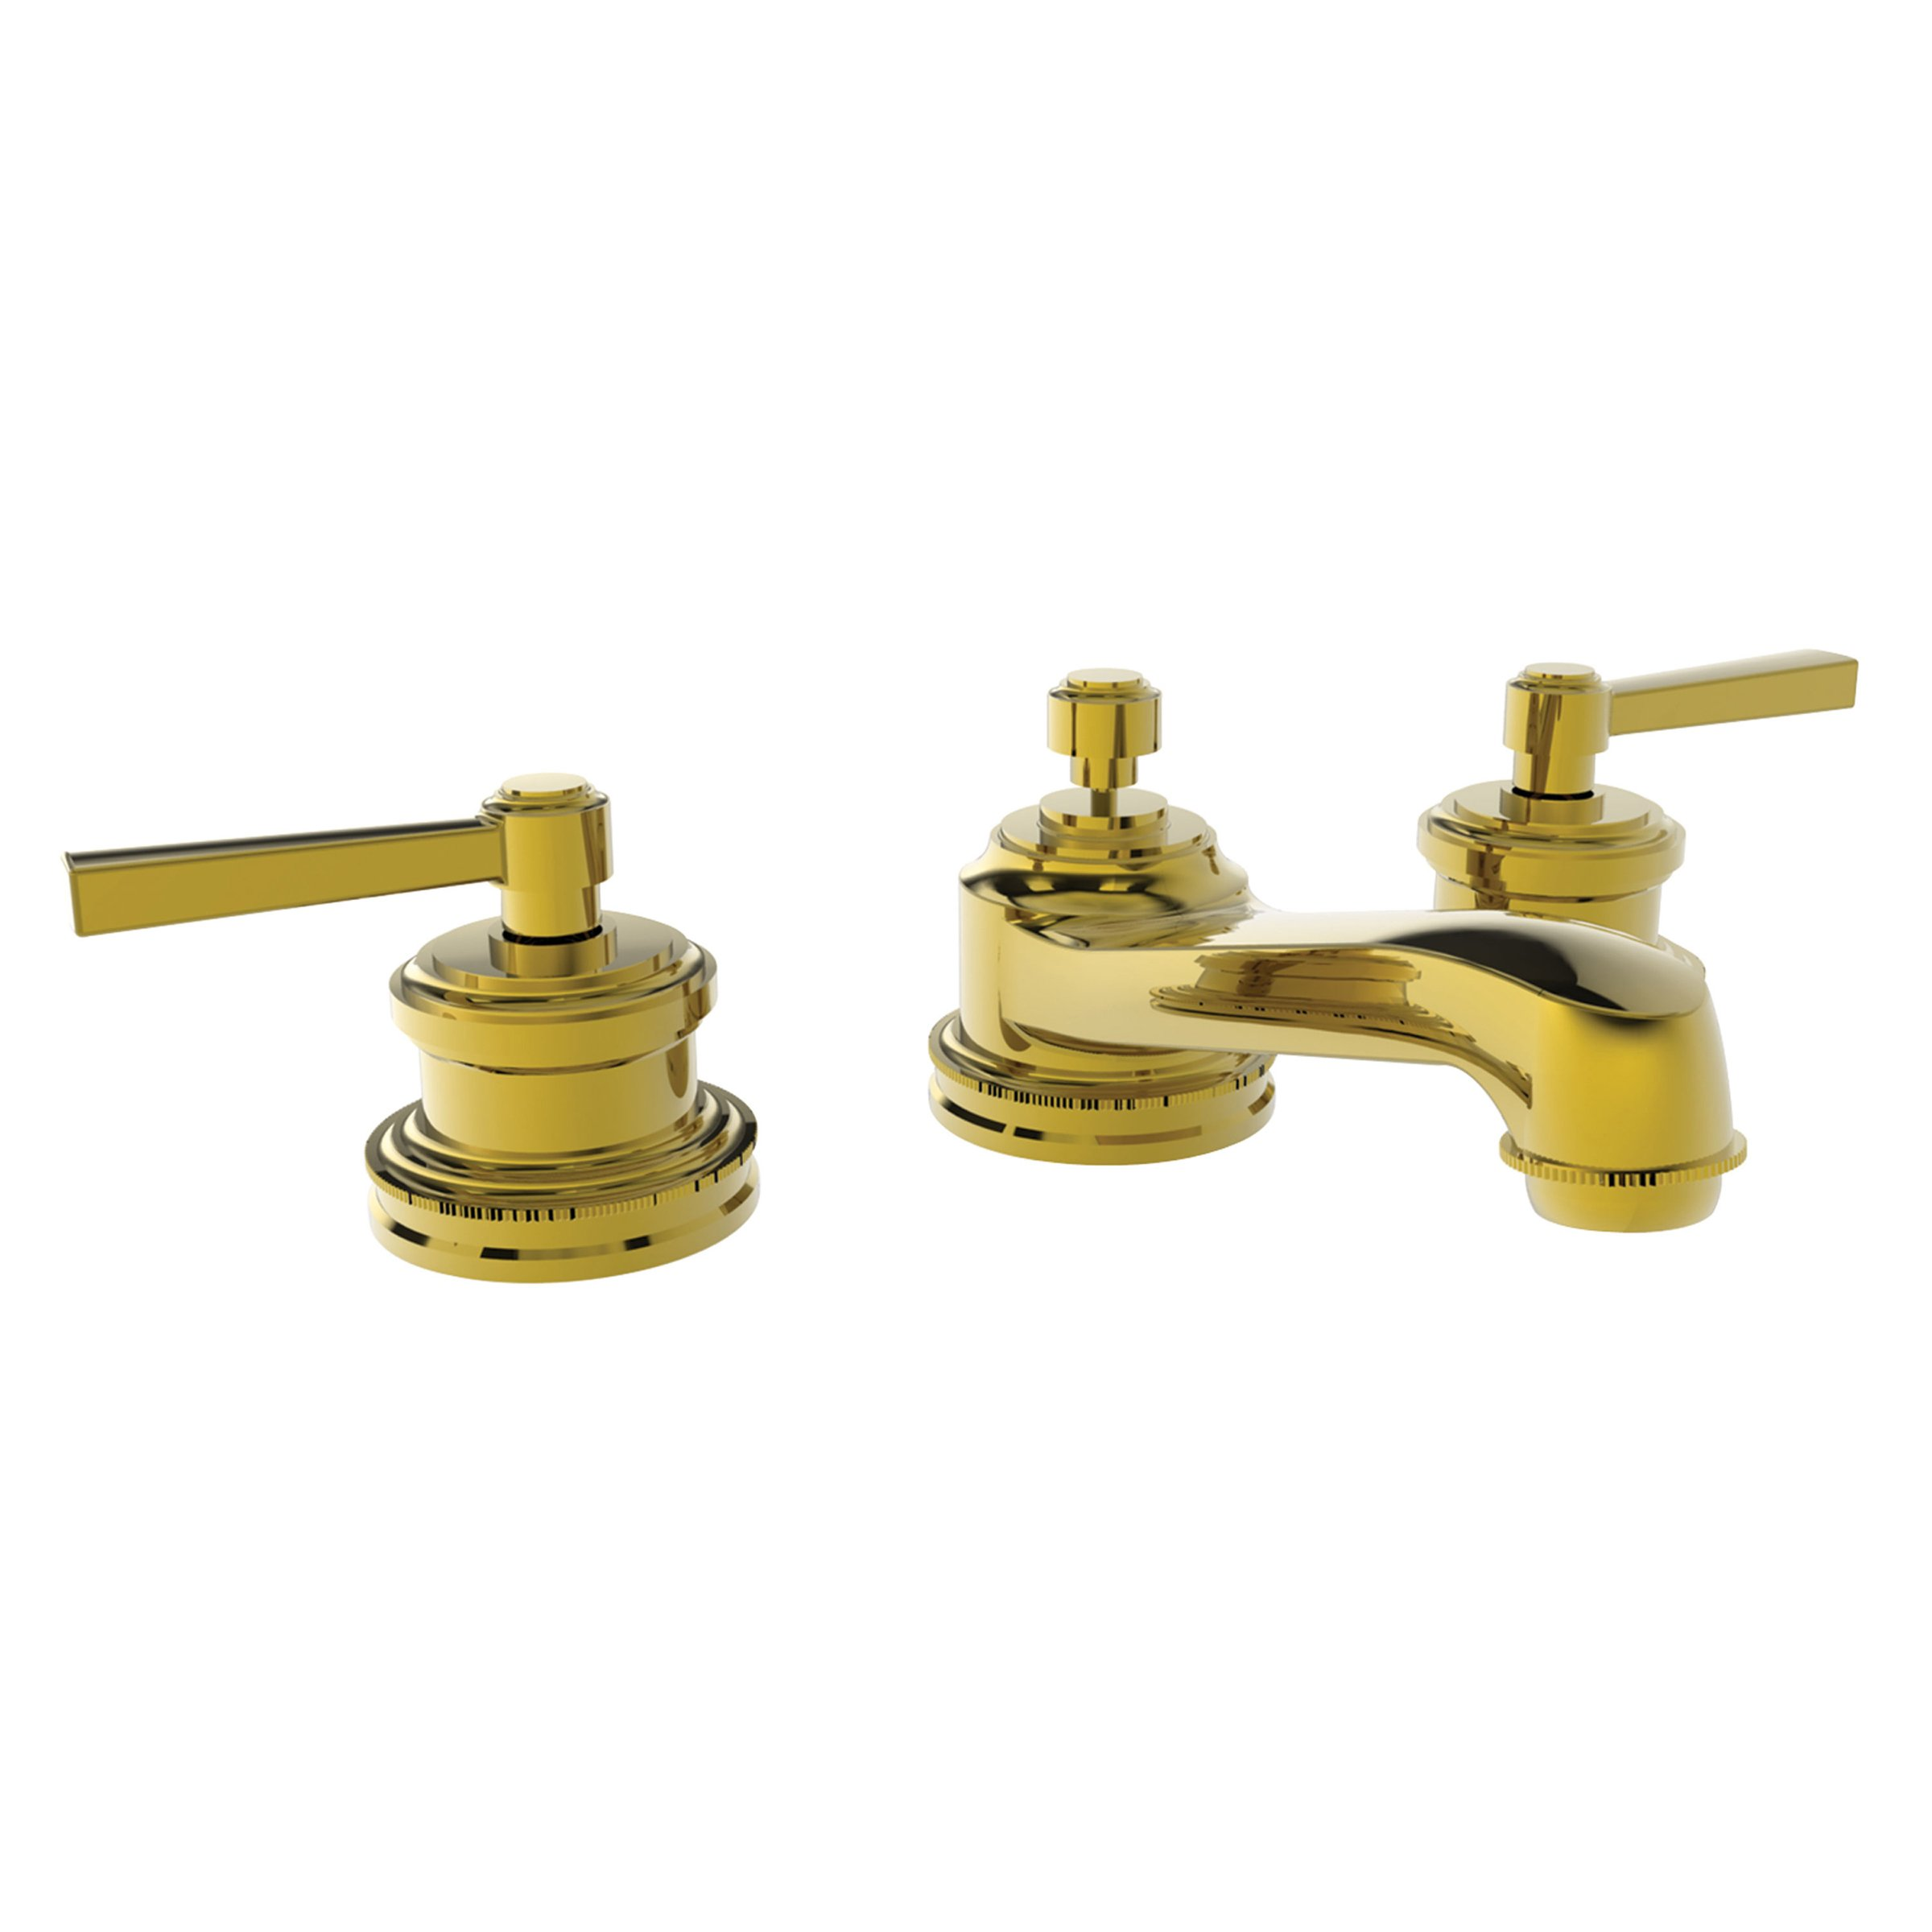 Unique Faucets Attractive Newport Brass Faucet Aerator Newport Brass Nb2919 Newport Brass